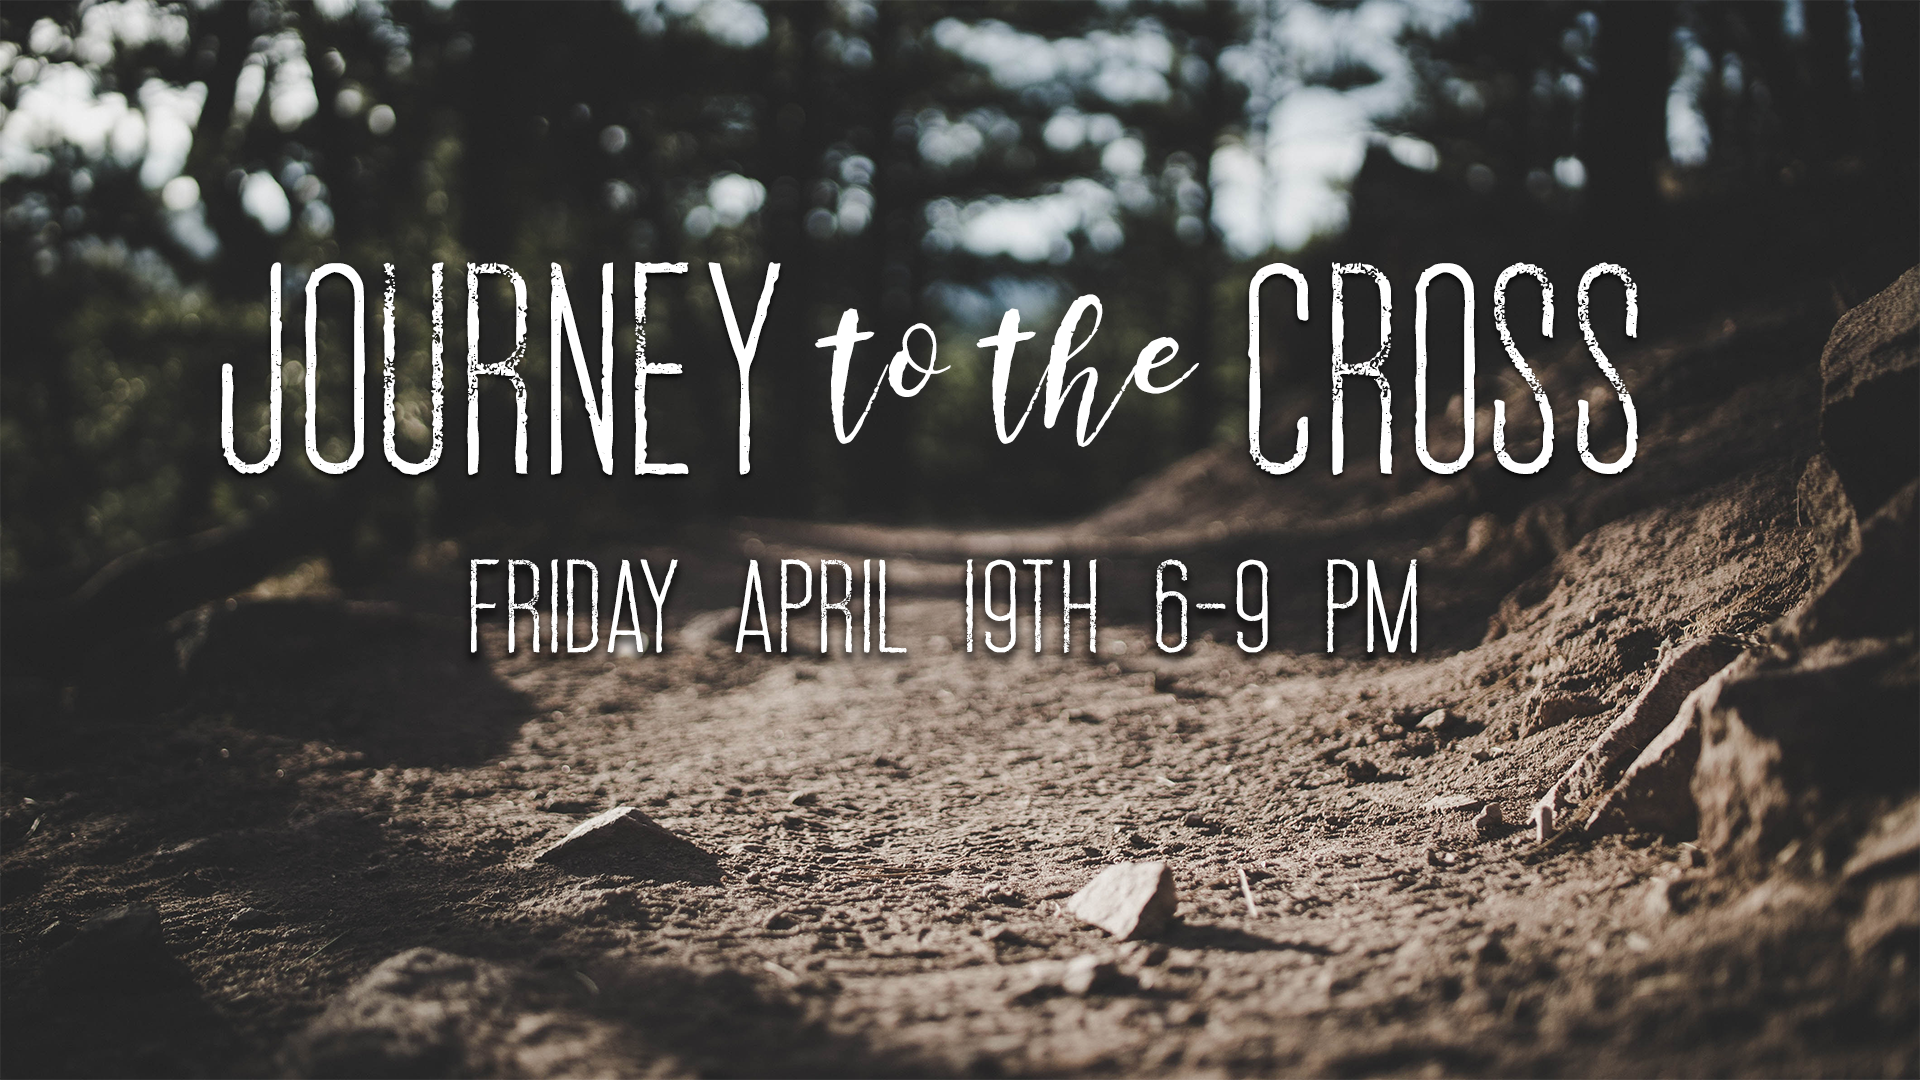 Impact Presents Journey to the Cross - Friday, April 19th between 6 and 9pm